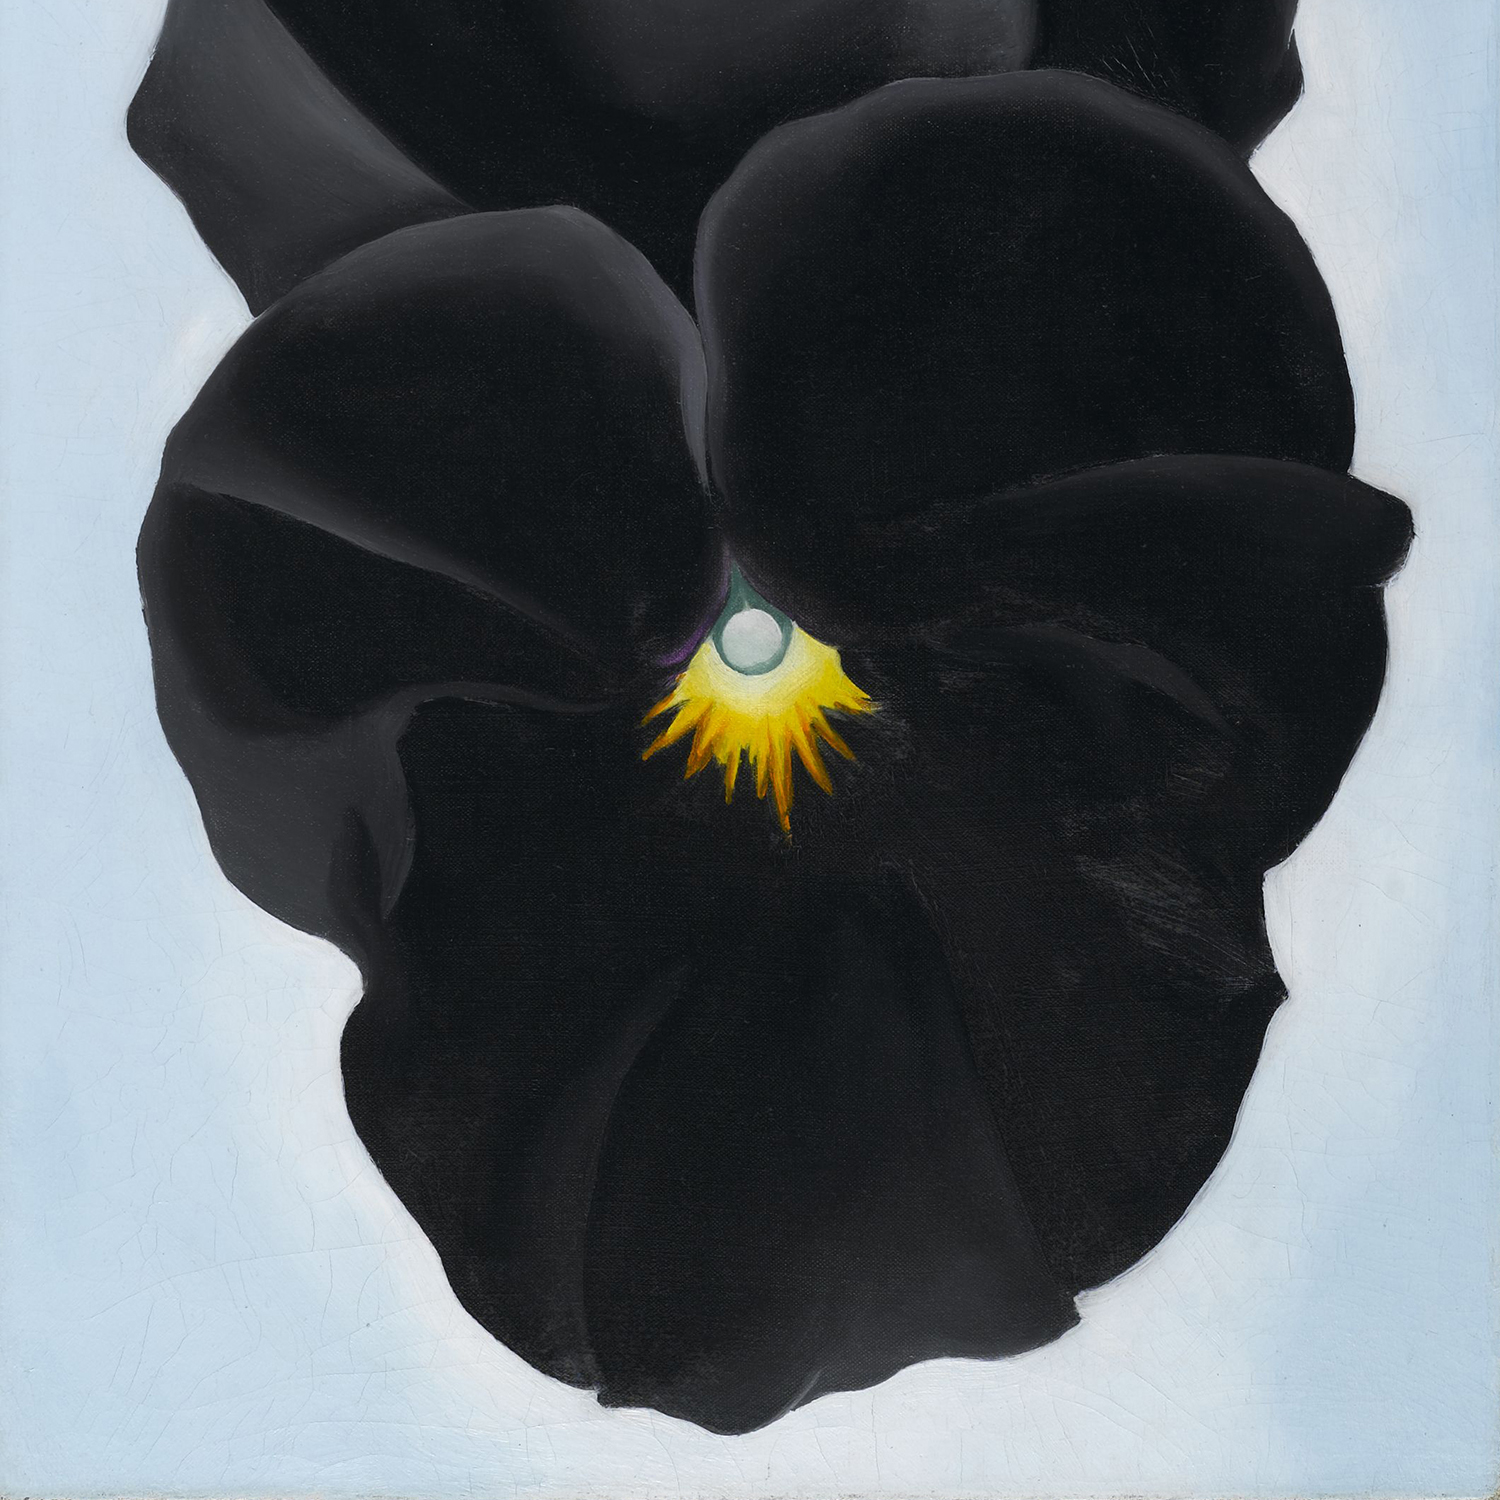 <p>Georgia O&rsquo;Keeffe (American, 1887&#8210;1986). <em>Black Pansy &amp; Forget-Me-Nots (Pansy)</em>, 1926. Oil on canvas, 27<sup>1</sup>/<sub>8</sub> x 12<sup>1</sup>/<sub>4</sub> in. (68.9 x 31.1 cm). Brooklyn Museum; Gift of Mrs. Alfred S. Rossin, 28.521. (Photo: Christine Gant, Brooklyn Museum)</p>